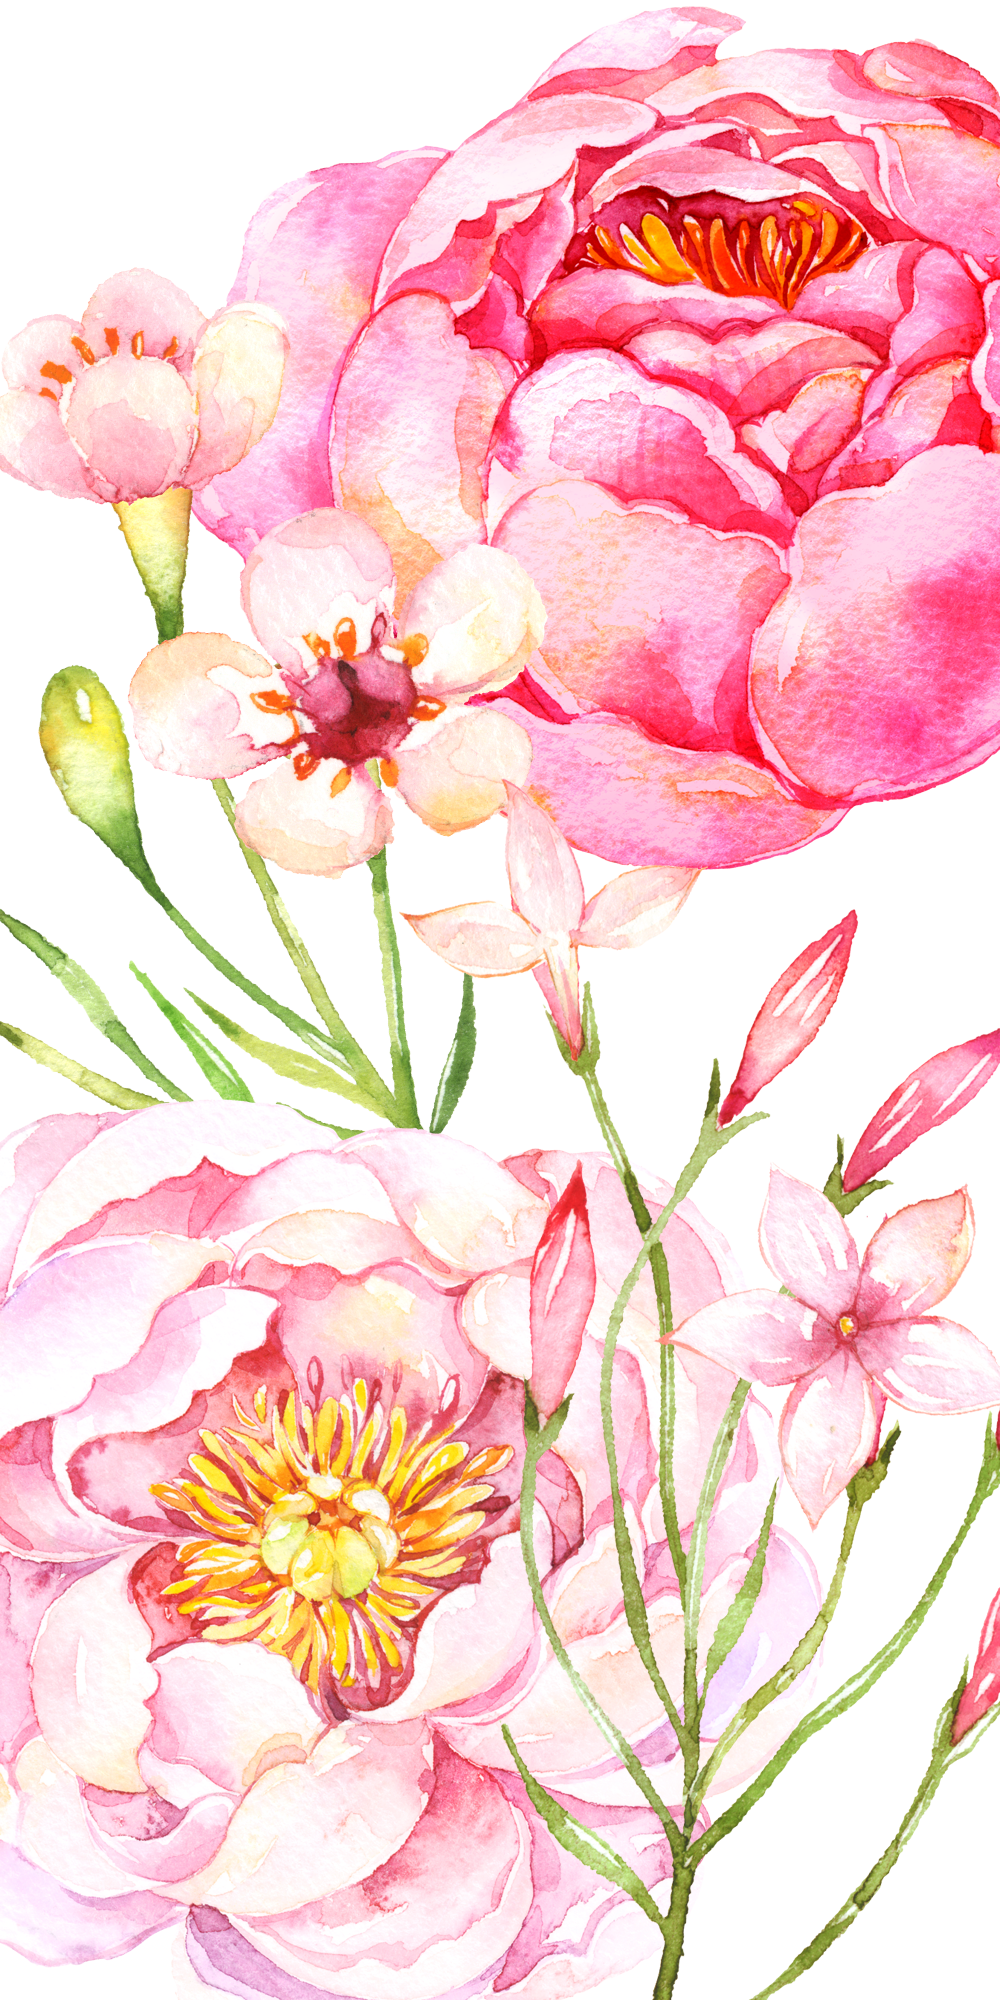 Pink Peonies Casetify Iphone Art Design Flowers Floral